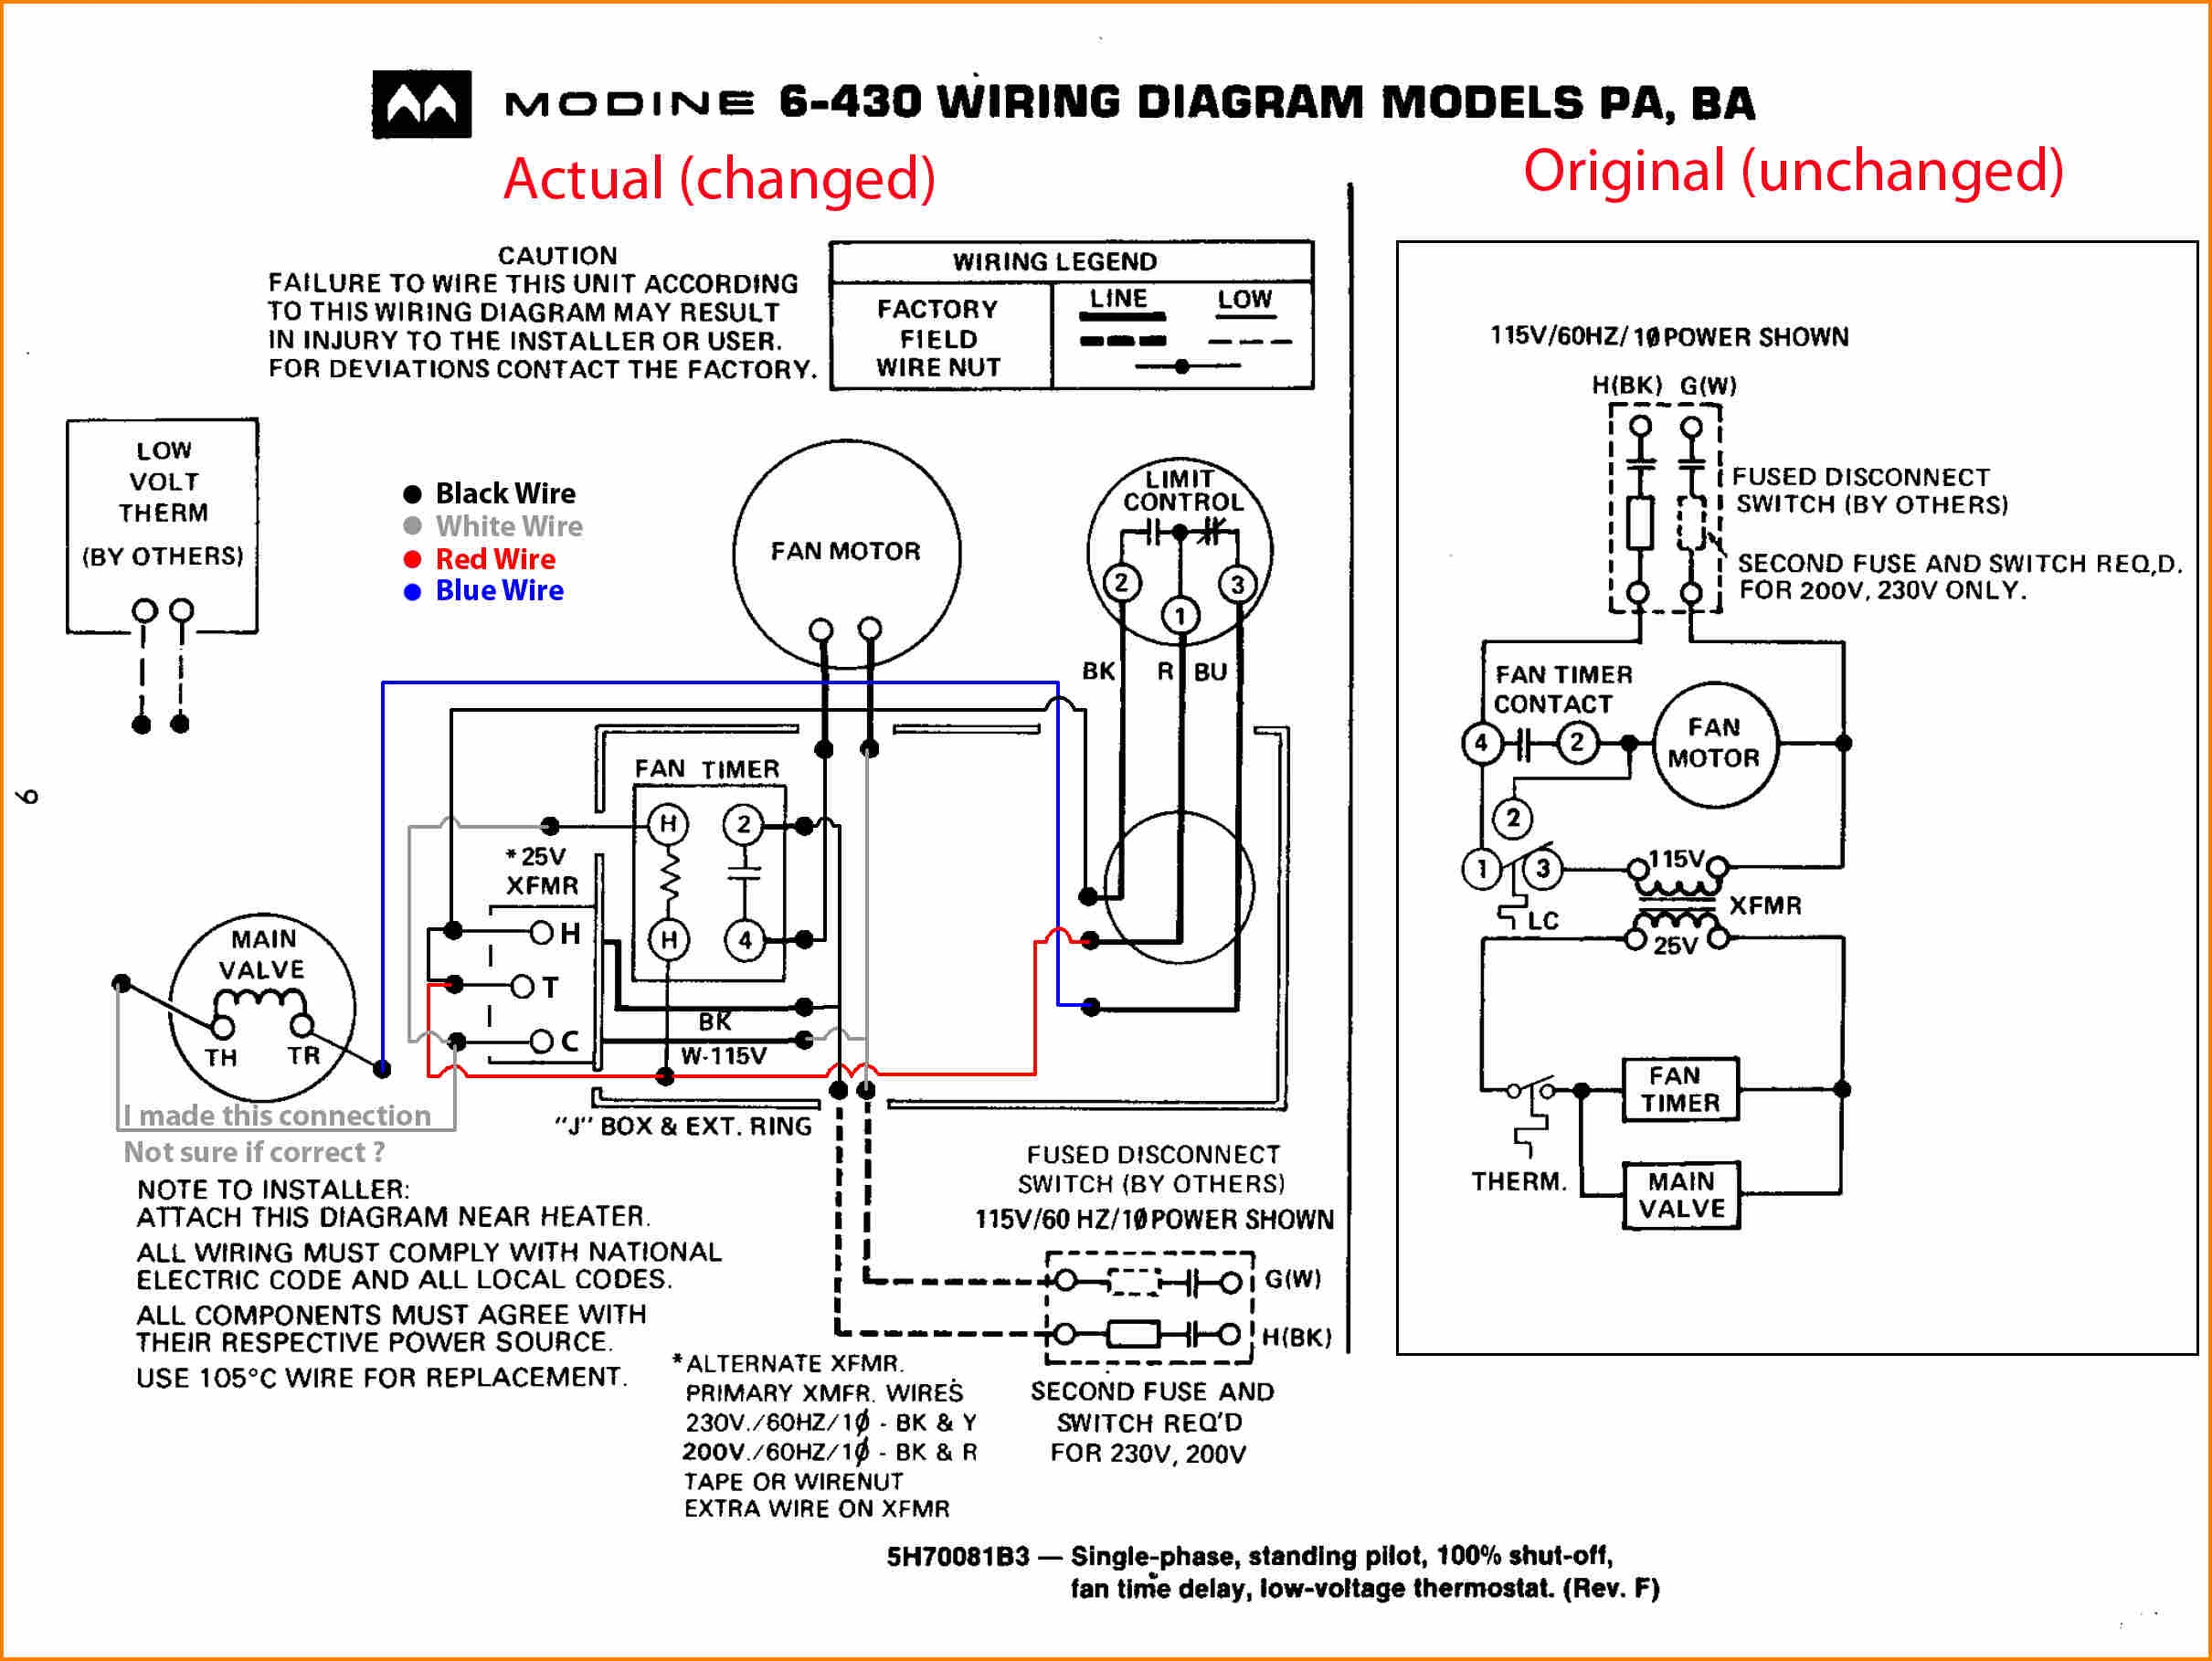 Motor For Furnace Wiring Diagram